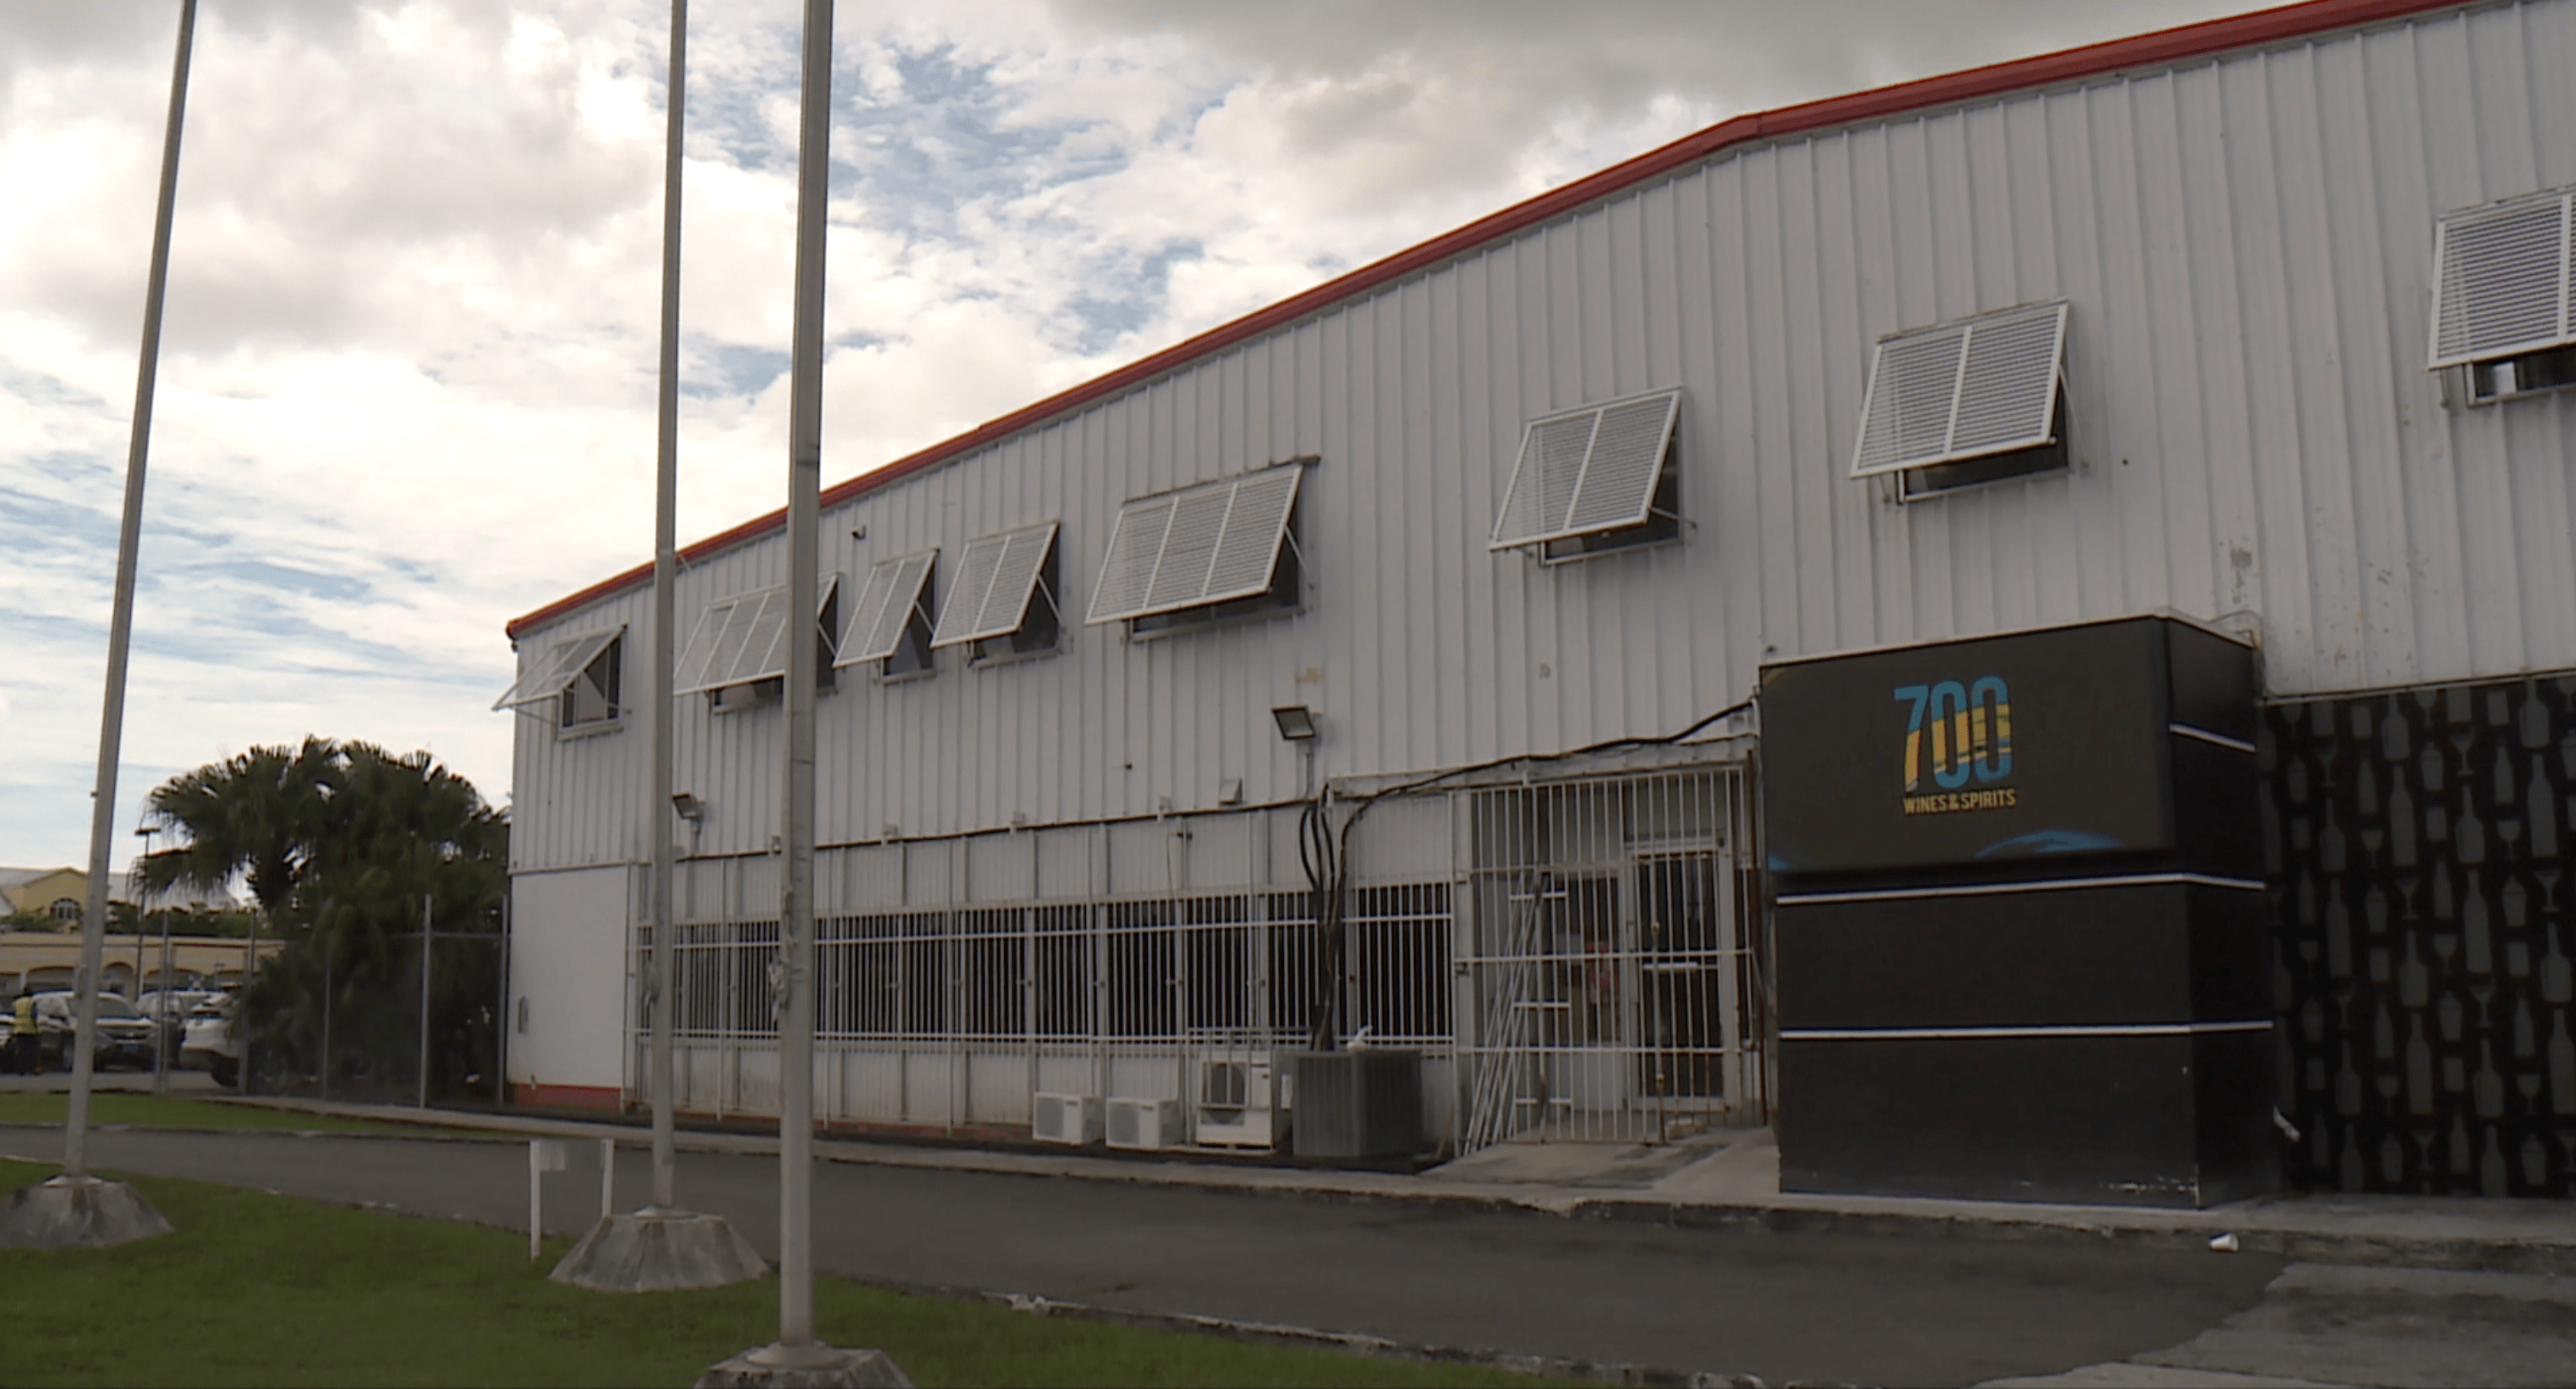 Security officer at wines and spirts warehouse shot to death